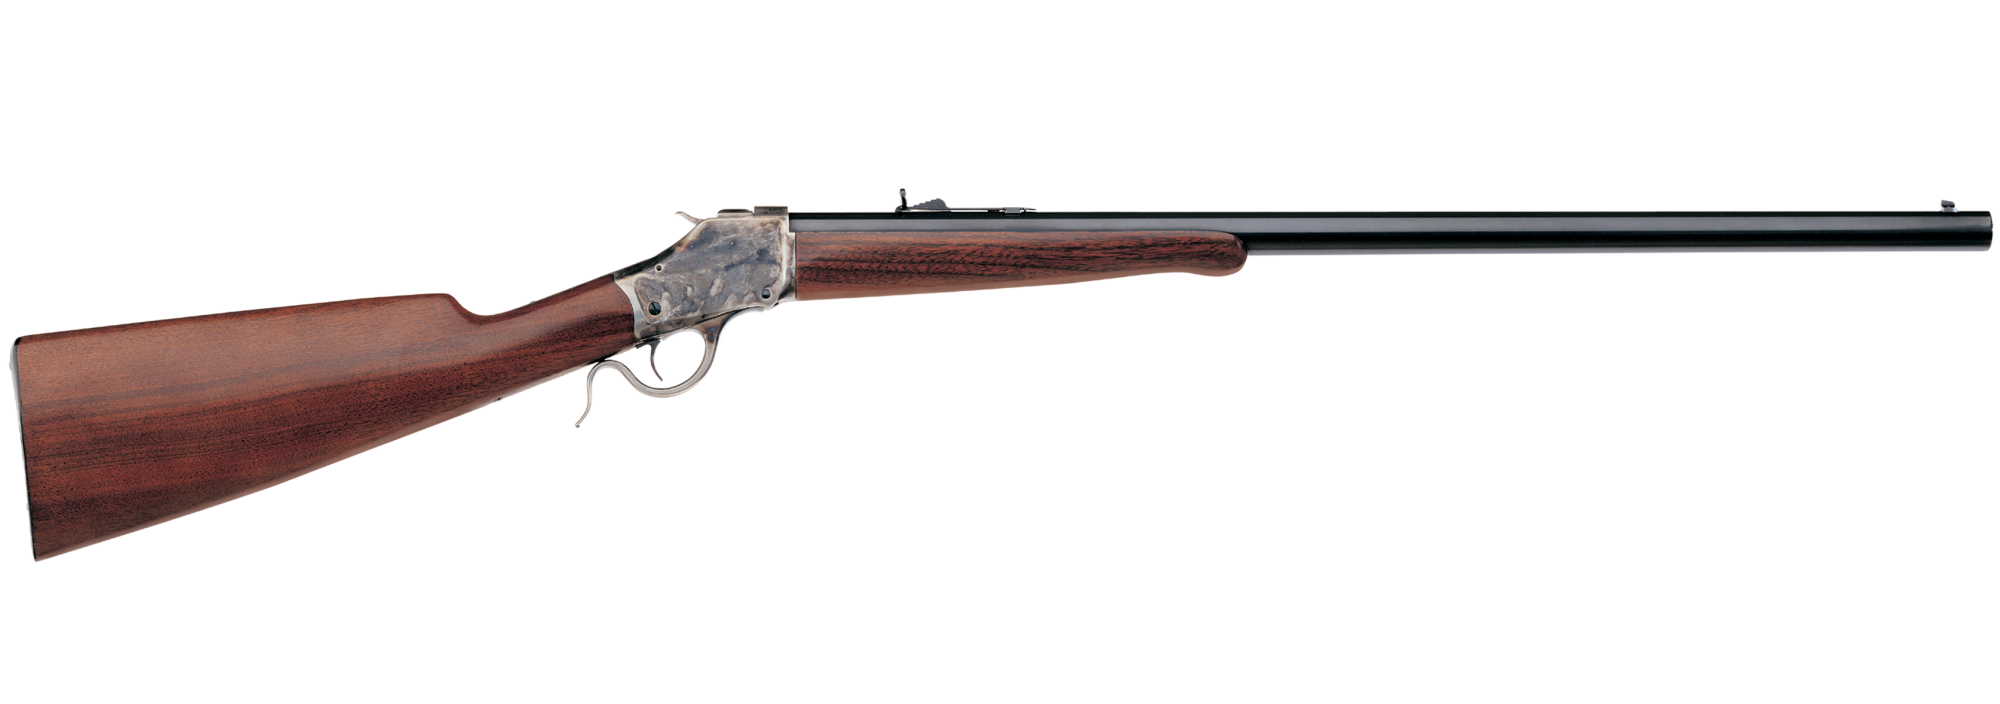 Transparent rifle. High wall uberti